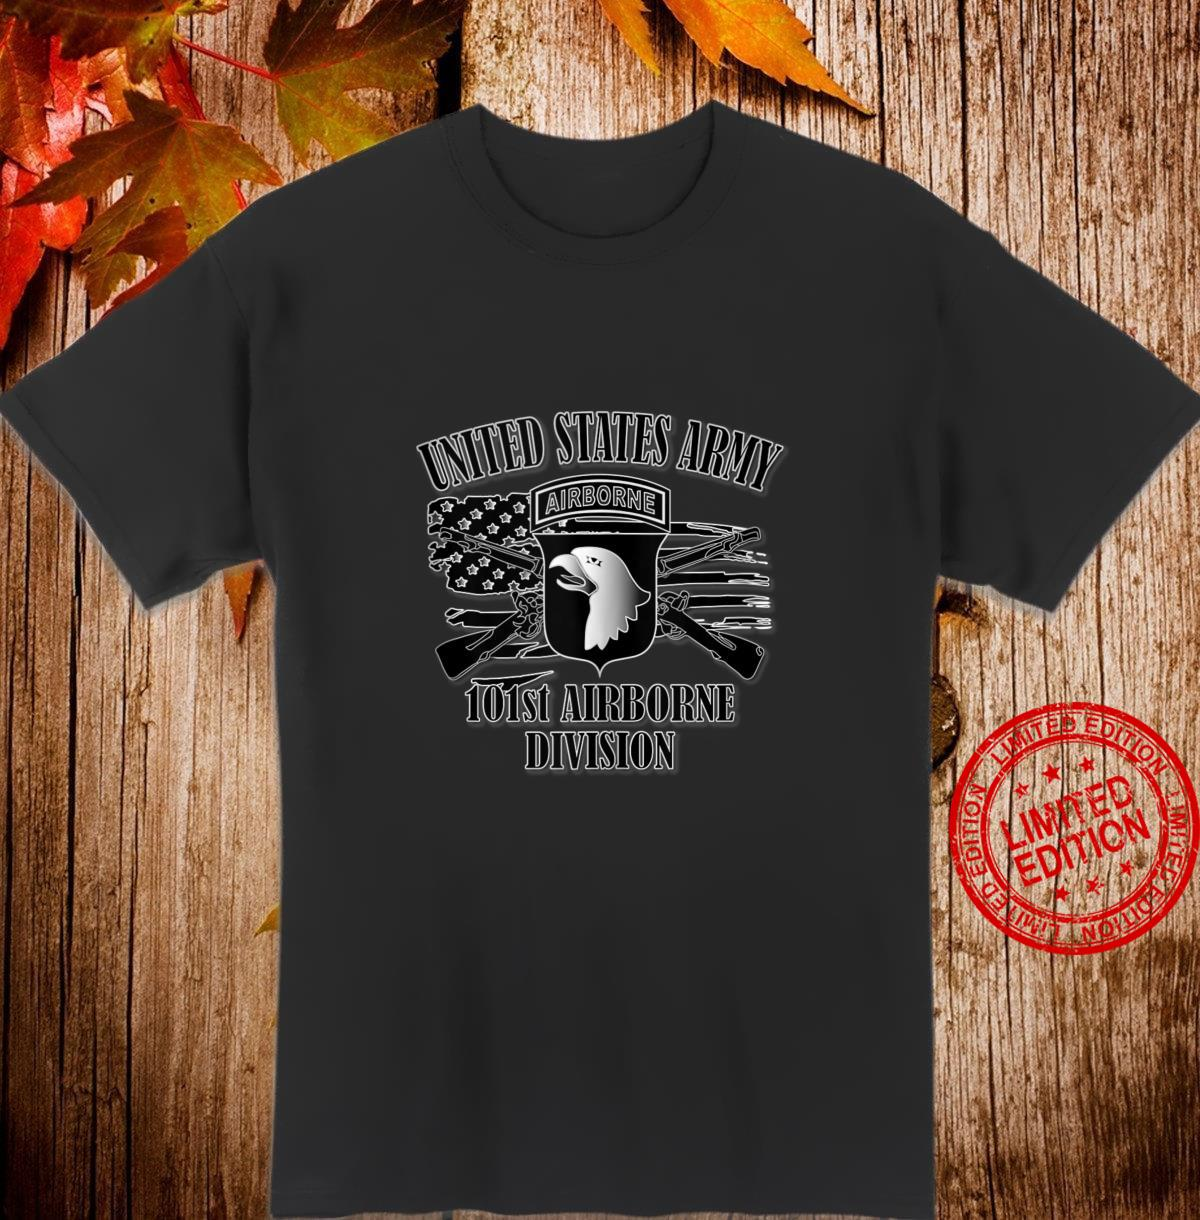 U.S. Army 101st Airborne Division Front Design Shirt